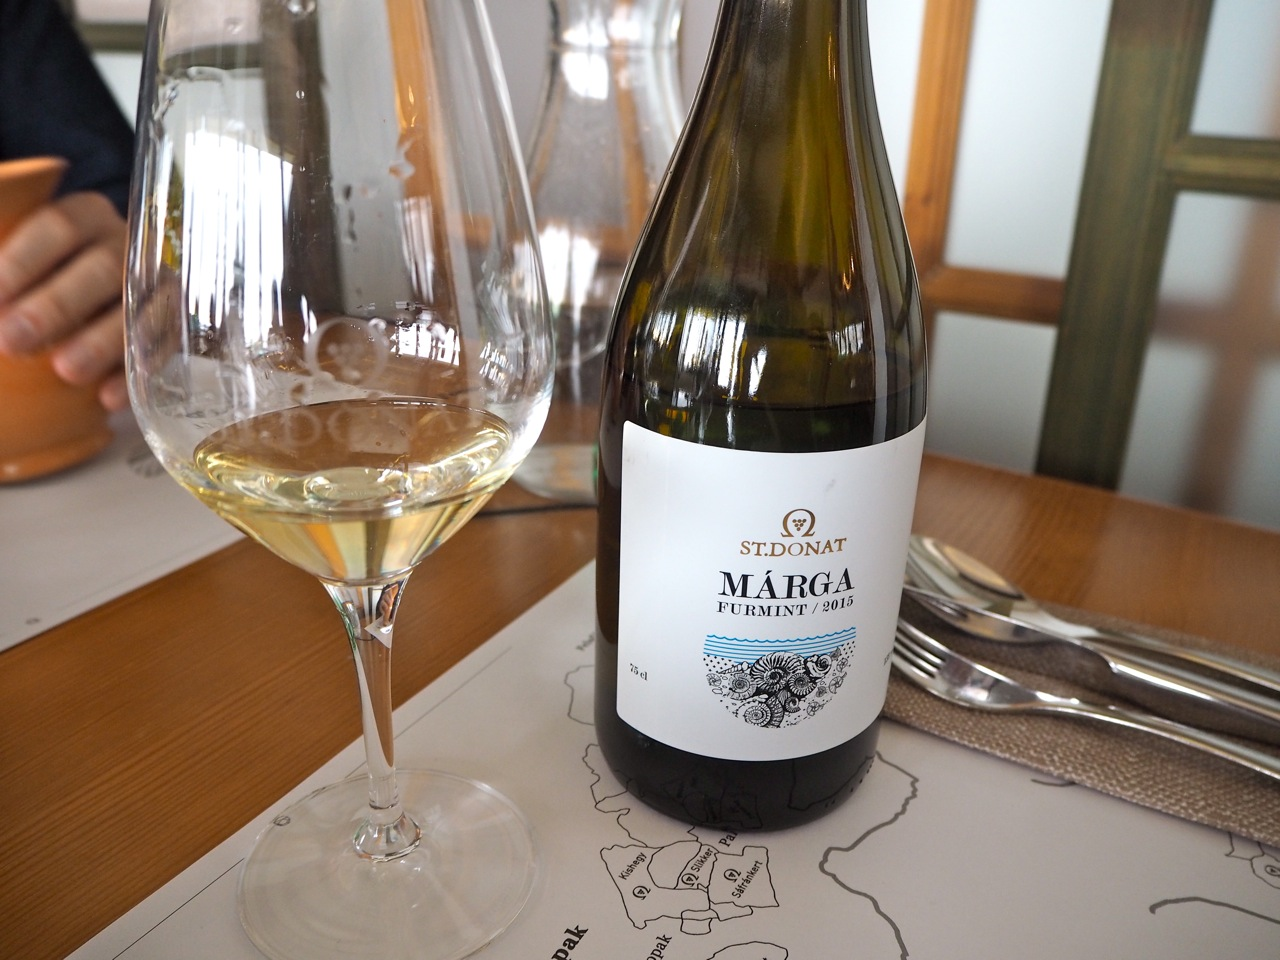 ST.DONAT MARGA FURMINT Photo by ©Papp Hideko